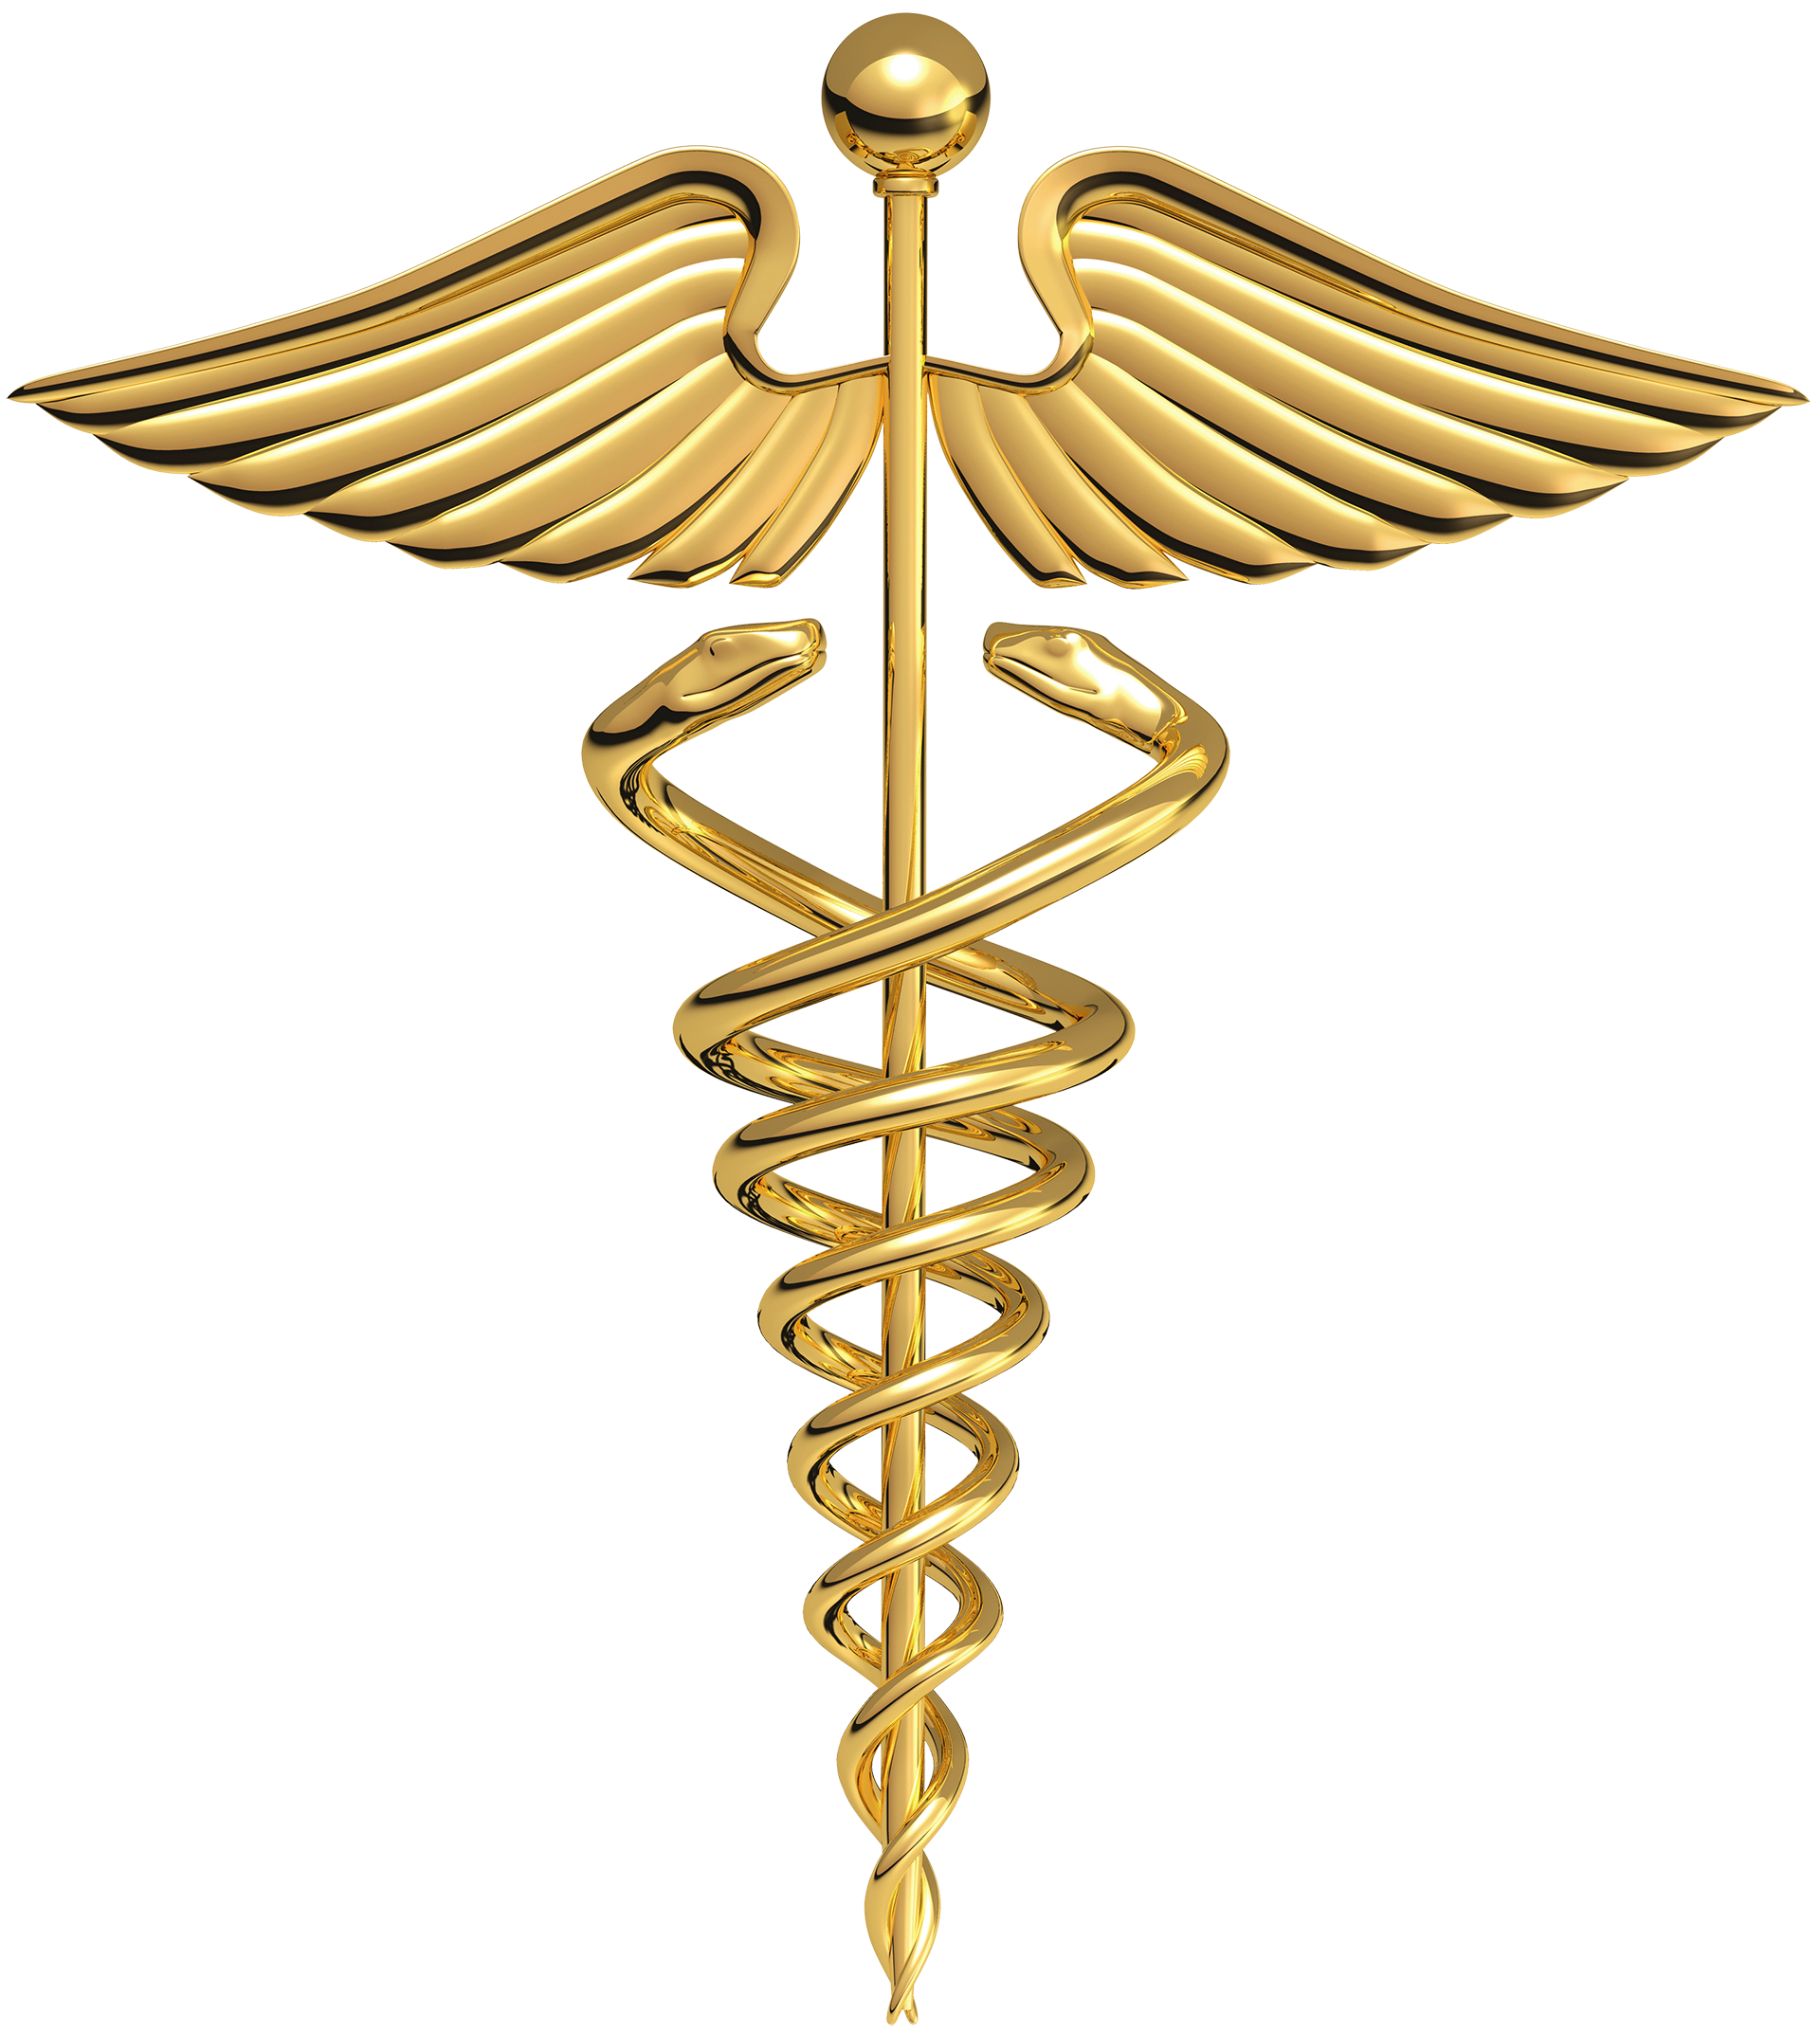 Caduceus - HEALTH - Messenger of the gods - COMPASSION - MERCY - BENEVOLENCE - BE HUMANE - BE KIND - BE GENTLE - DO NO HARM - DO NOT HATE - DO NOT FEAR - FEAR NOT - BE NOT AFRAID - CAUSE NO PAIN - BE AS PAINLESS AS POSSIBLE - CAUSE NO FEAR - DO NOT BE SCARY - DO NOT PUNISH - DO NOT MAKE THREATS - DO NOT BE COERCIVE - BE PERMISSIVE - BE TOLERANT - USE BIRTH CONTROL - PERMIT DIVORCE - EMPATHY IS CRITICAL - RESPECT FOR THE DIGNITY OF ALL HUMAN BEINGS IS CRITICAL - FREE UNIVERSAL HEALTH CARE - FREE UNIVERSAL EDUCATION - UNIVERSAL HOME OWNERSHIP